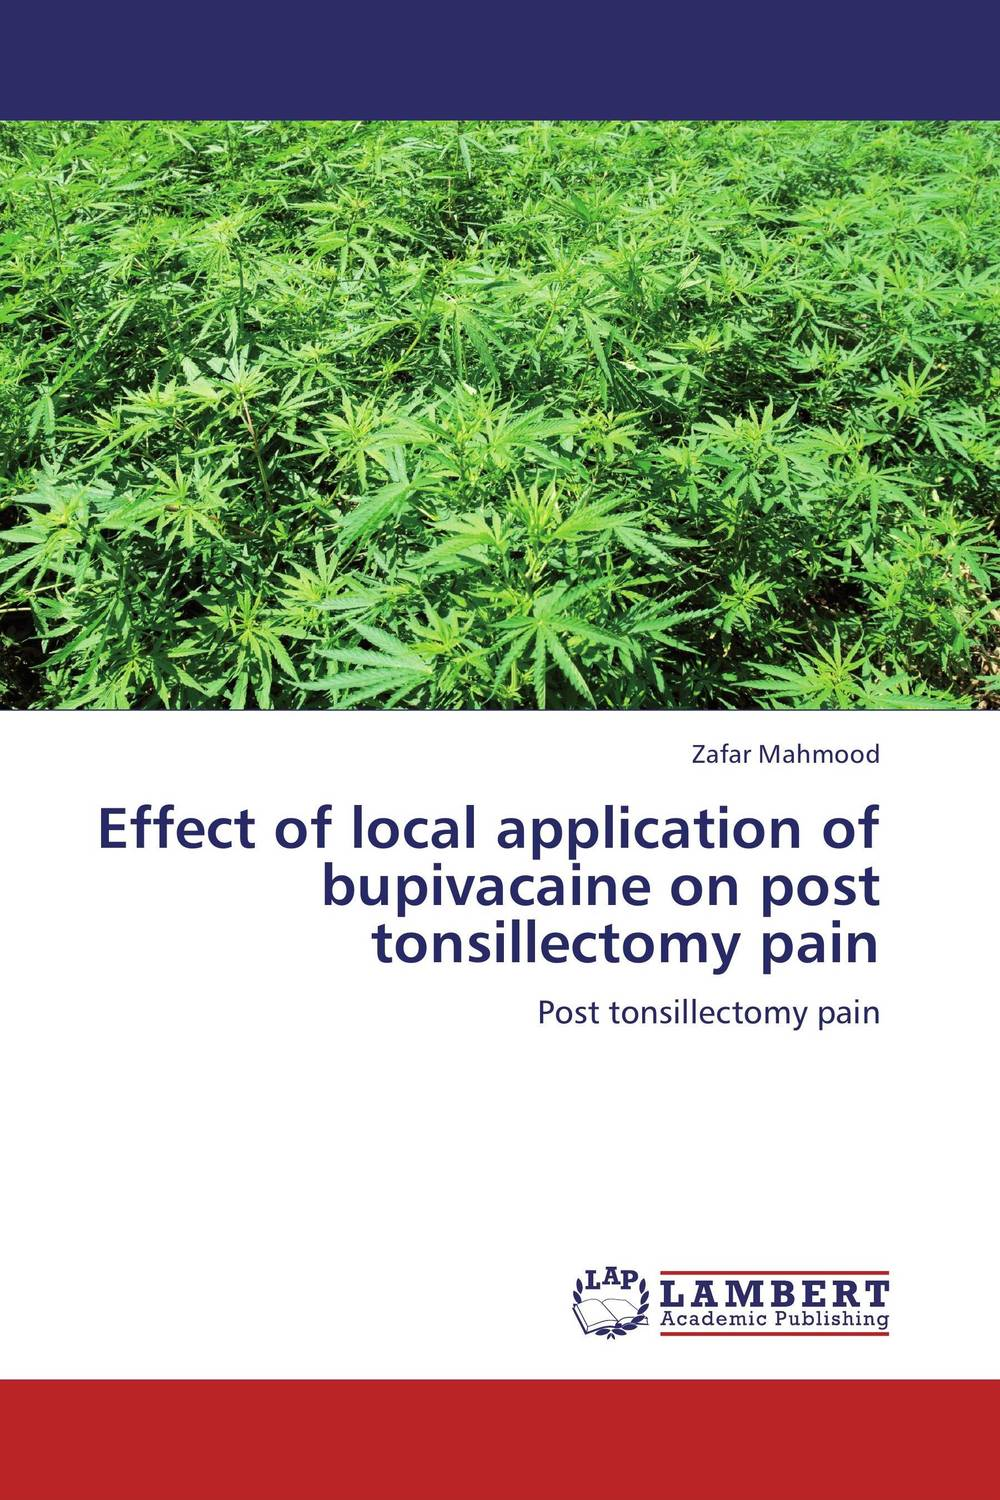 Effect of local application of bupivacaine on post tonsillectomy pain the application of global ethics to solve local improprieties